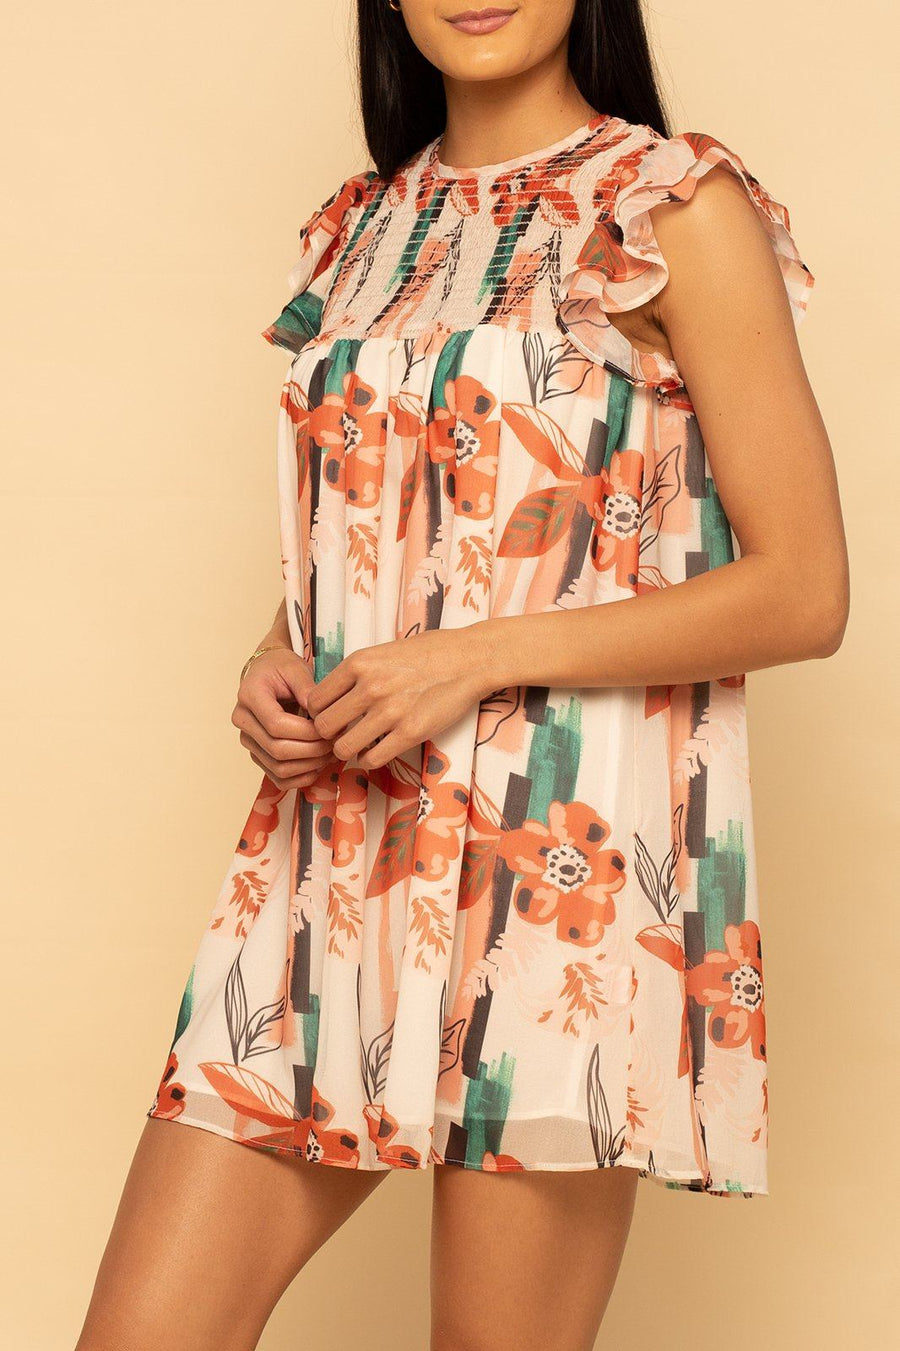 Smocked Top Dress -  Abstract Floral - Shore